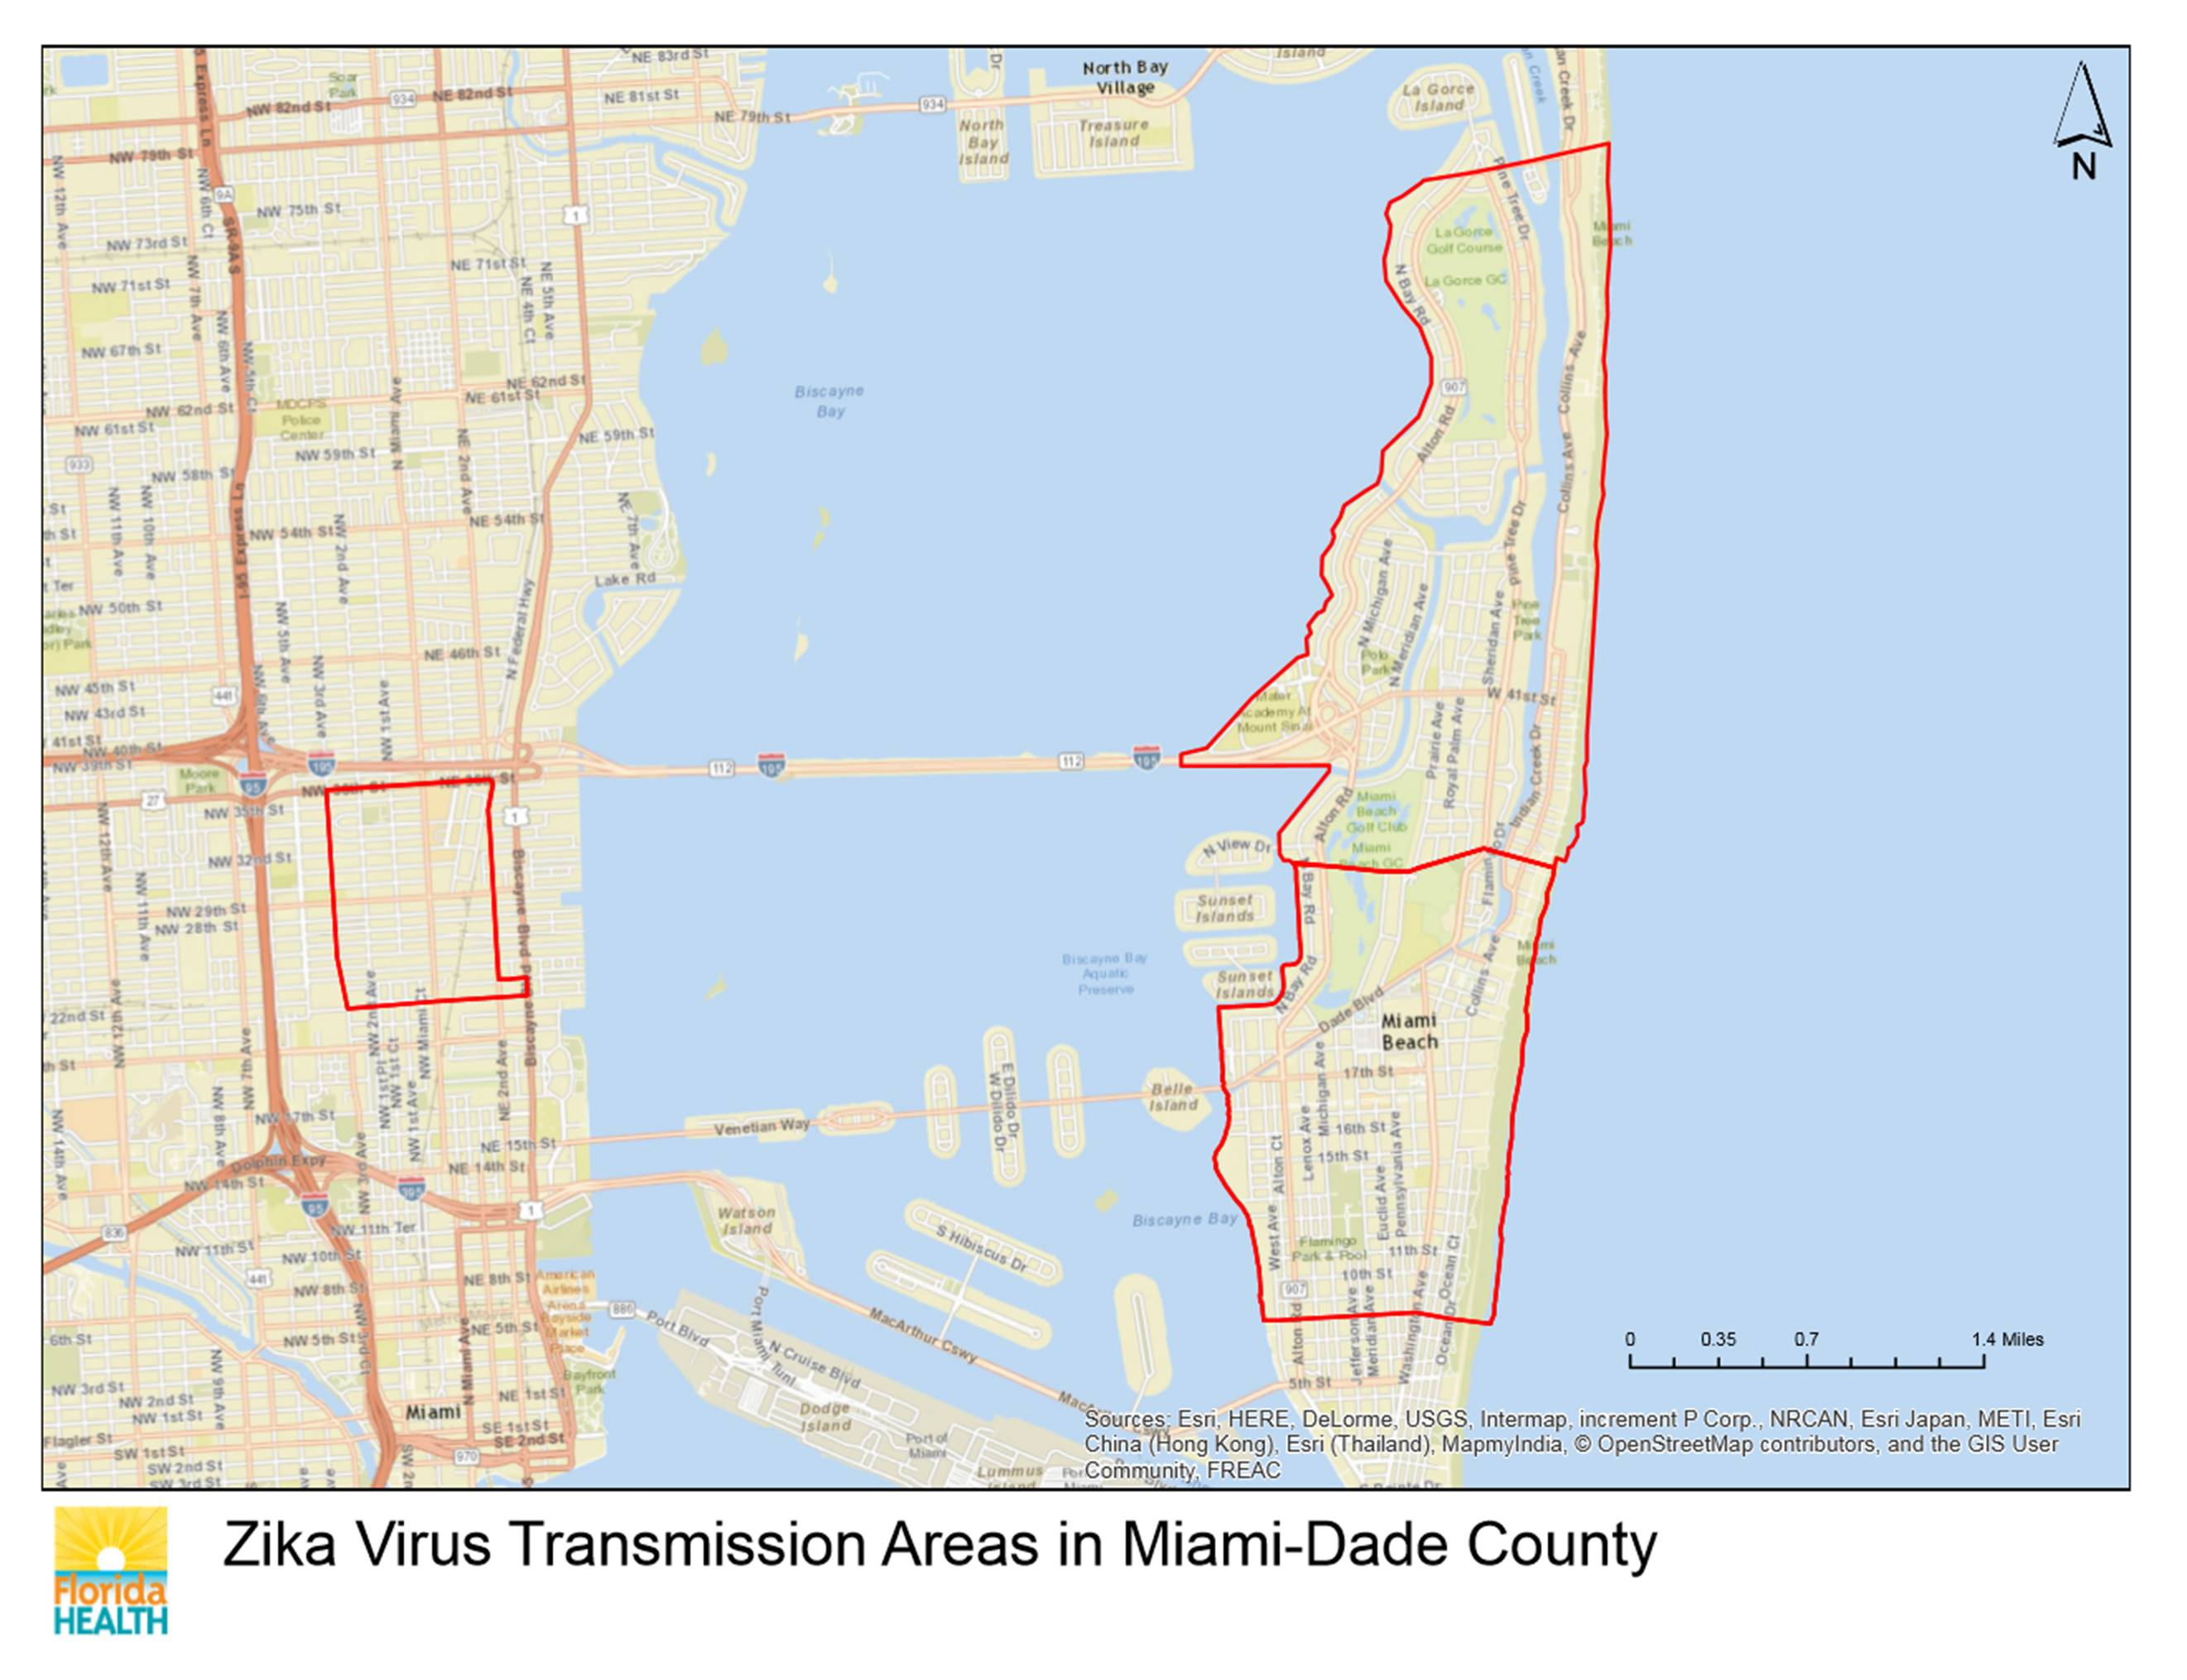 Aerial pesticide spray adds to fears in Zika-stricken Miami